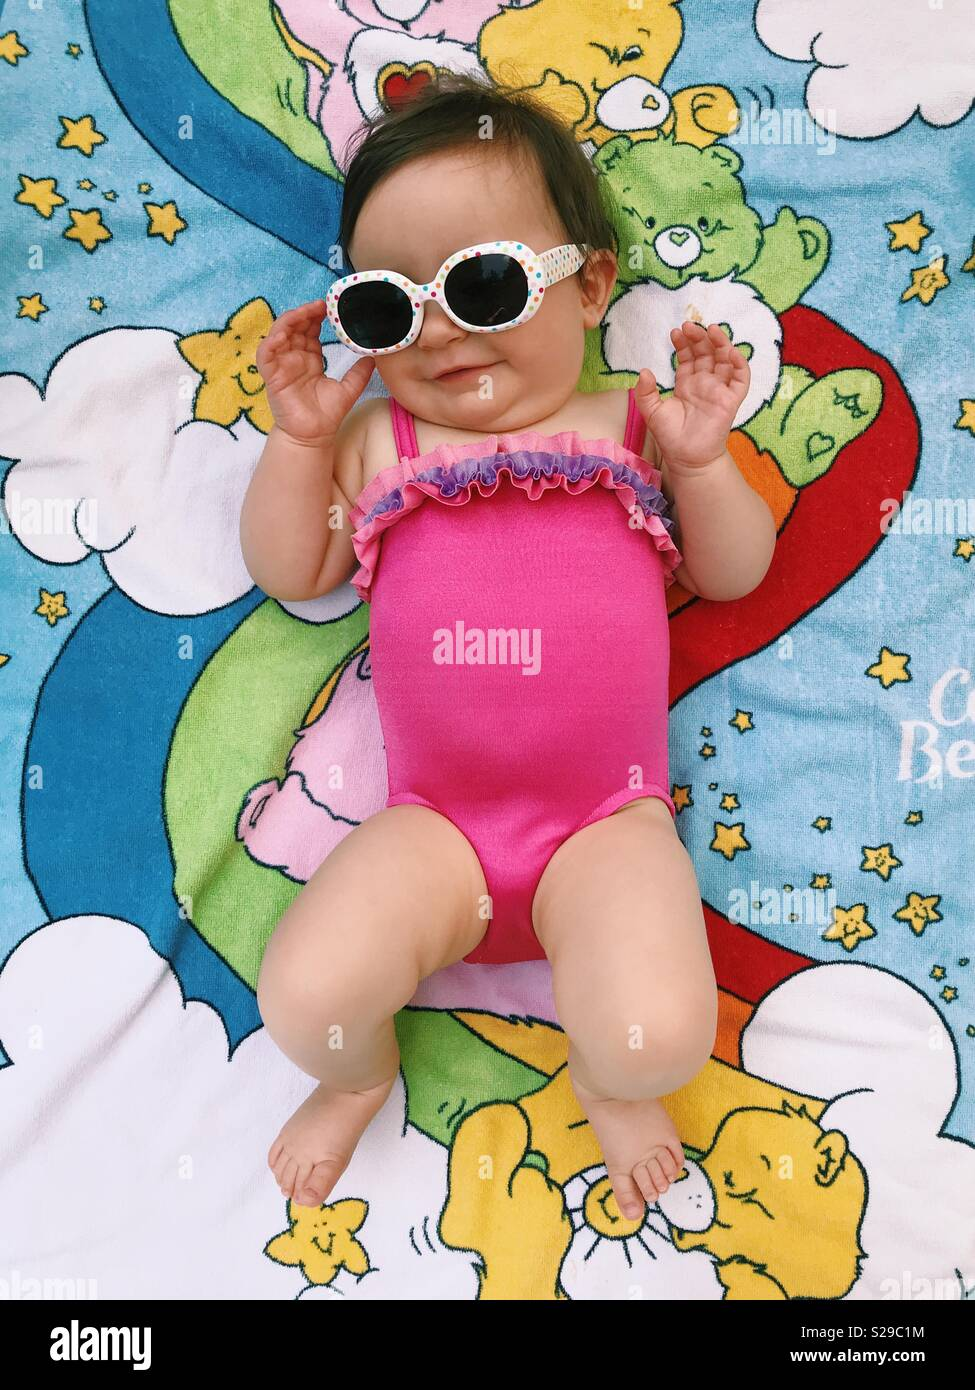 A cute baby girl in a pink bathing suit, wearing sunglasses and lying on a Care Bears beach towel. - Stock Image